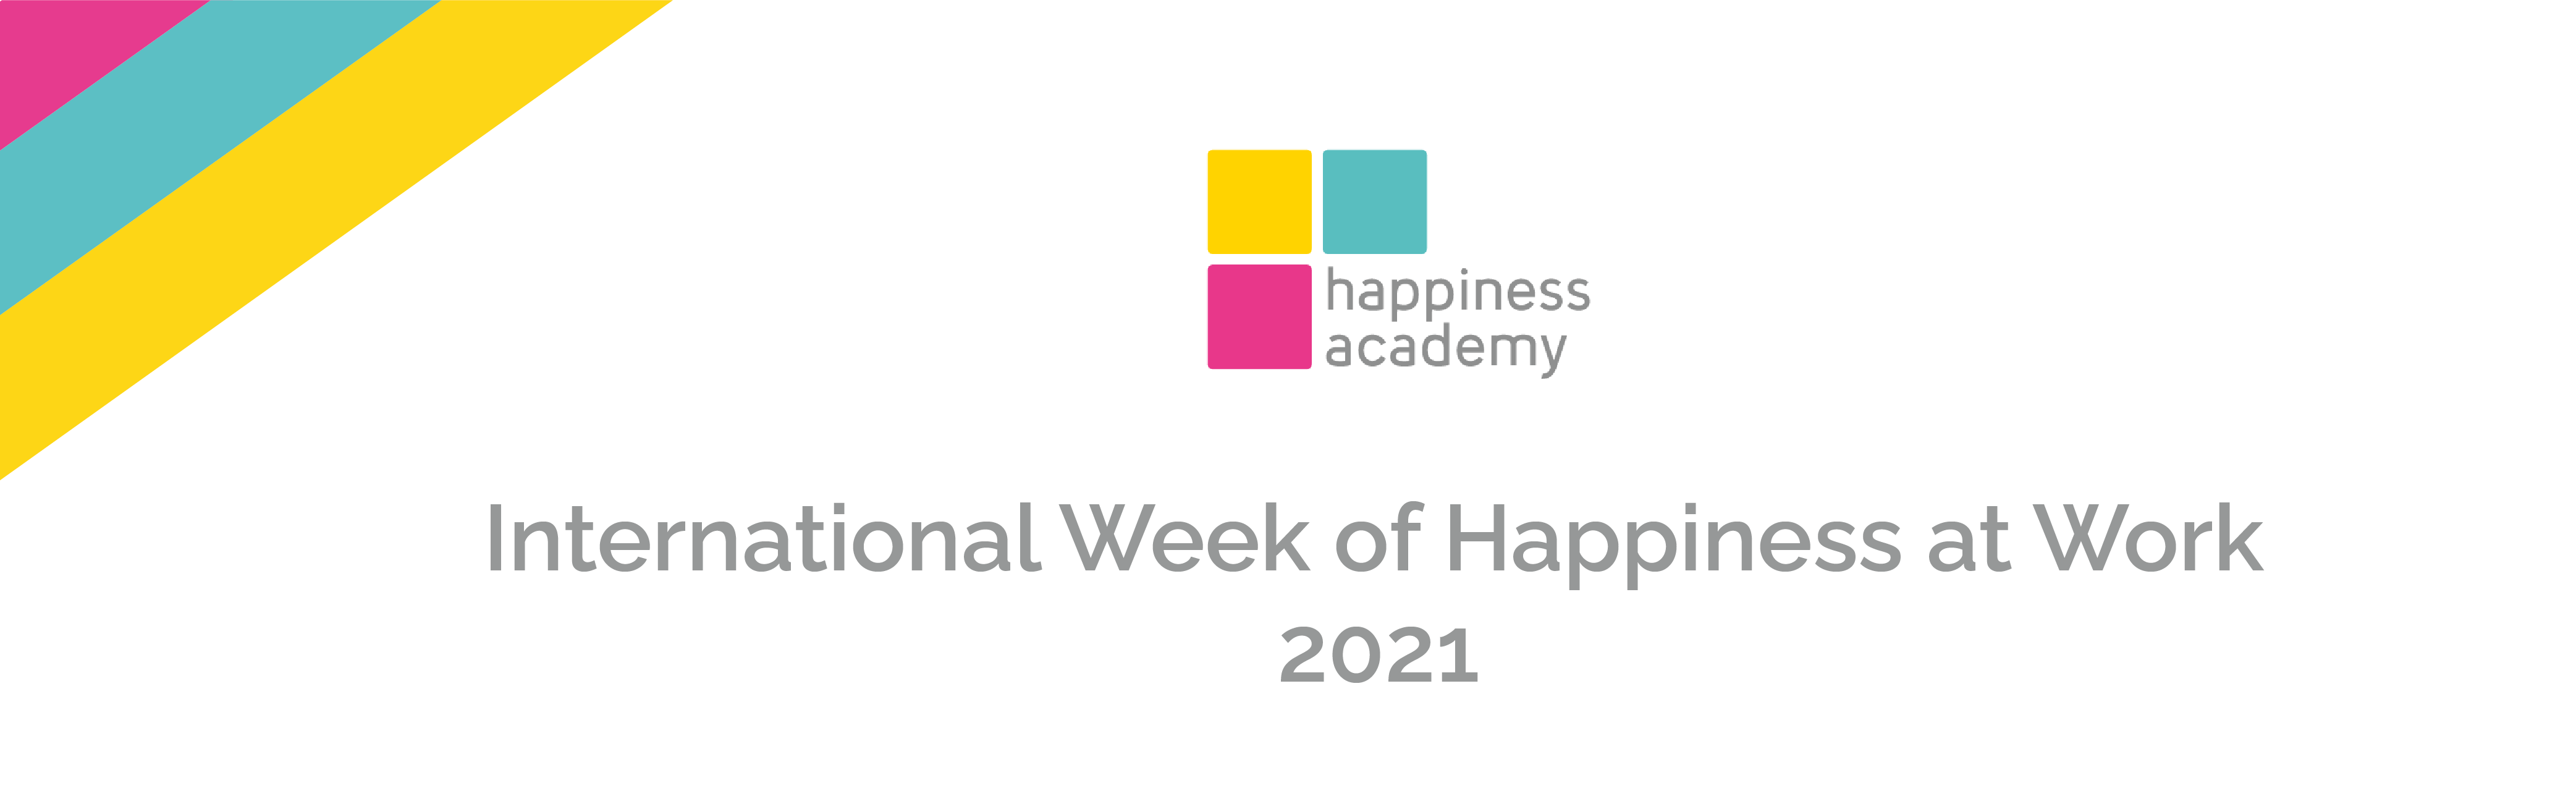 international-week-of-happiness-at-work-happiness-academy-2021